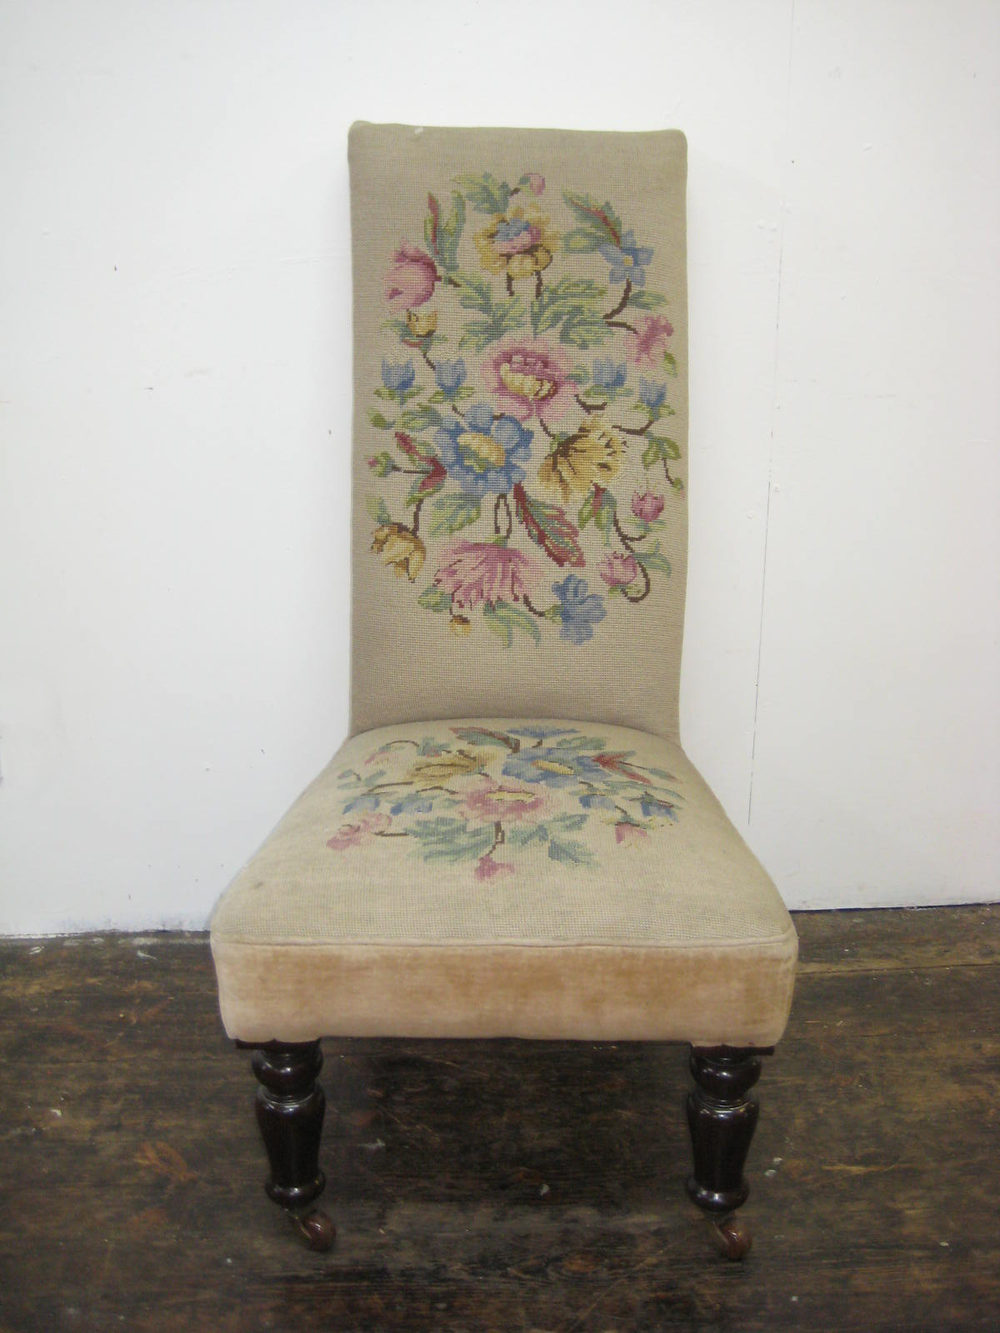 Victorian Nursing Chair with Needlepoint Antique Nursing Chairs Victorian  mahogany needlepoint - Victorian Nursing Chair With Needlepoint - Antiques Atlas